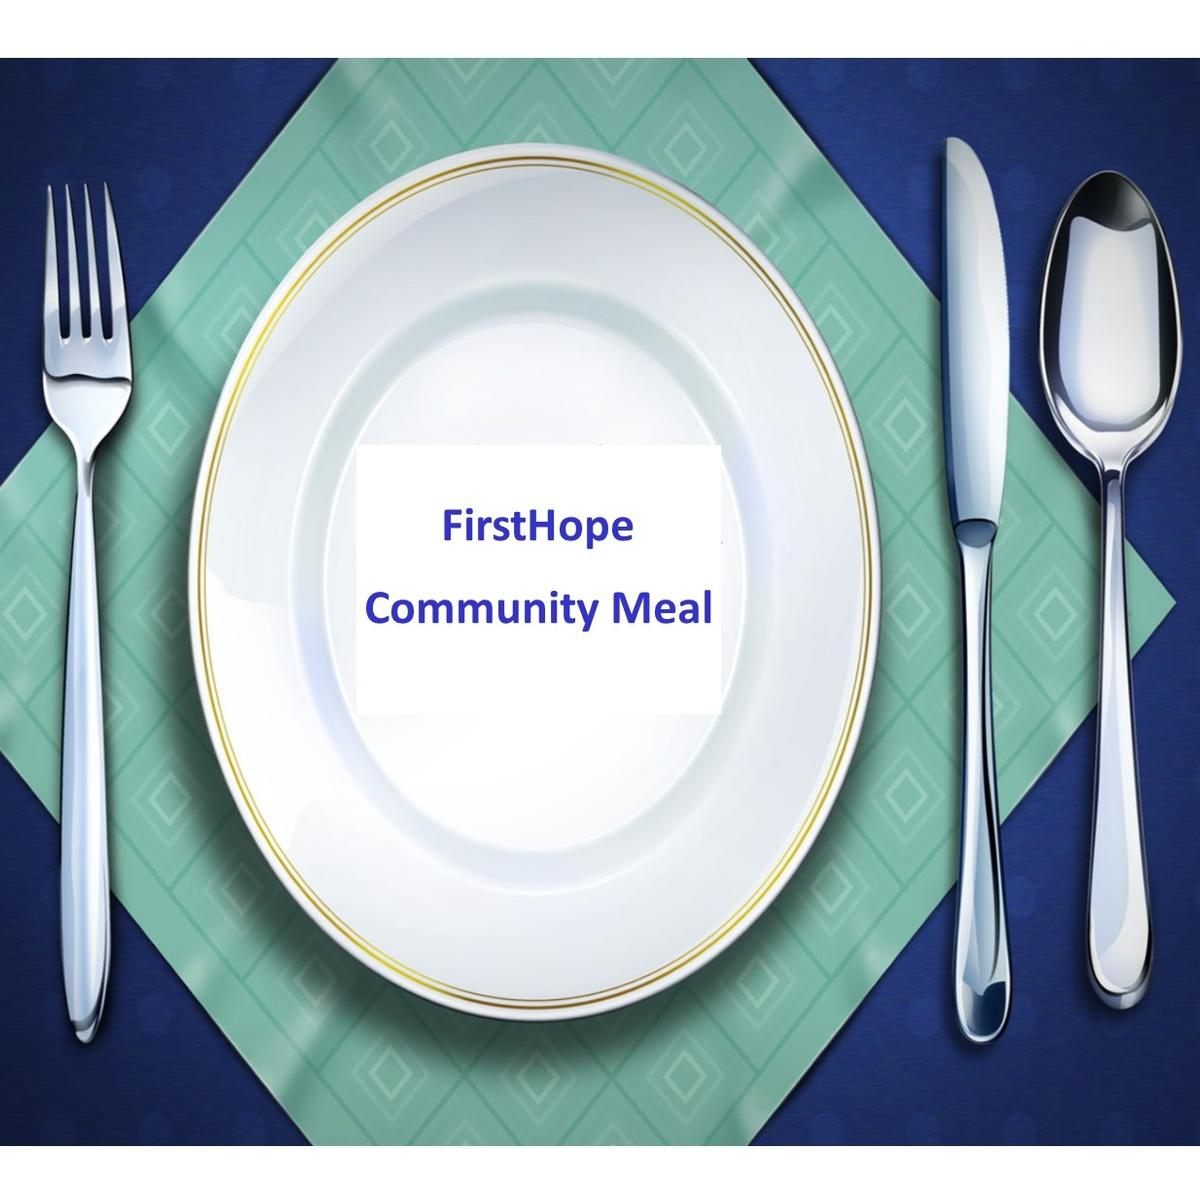 FirstHope Community Meal